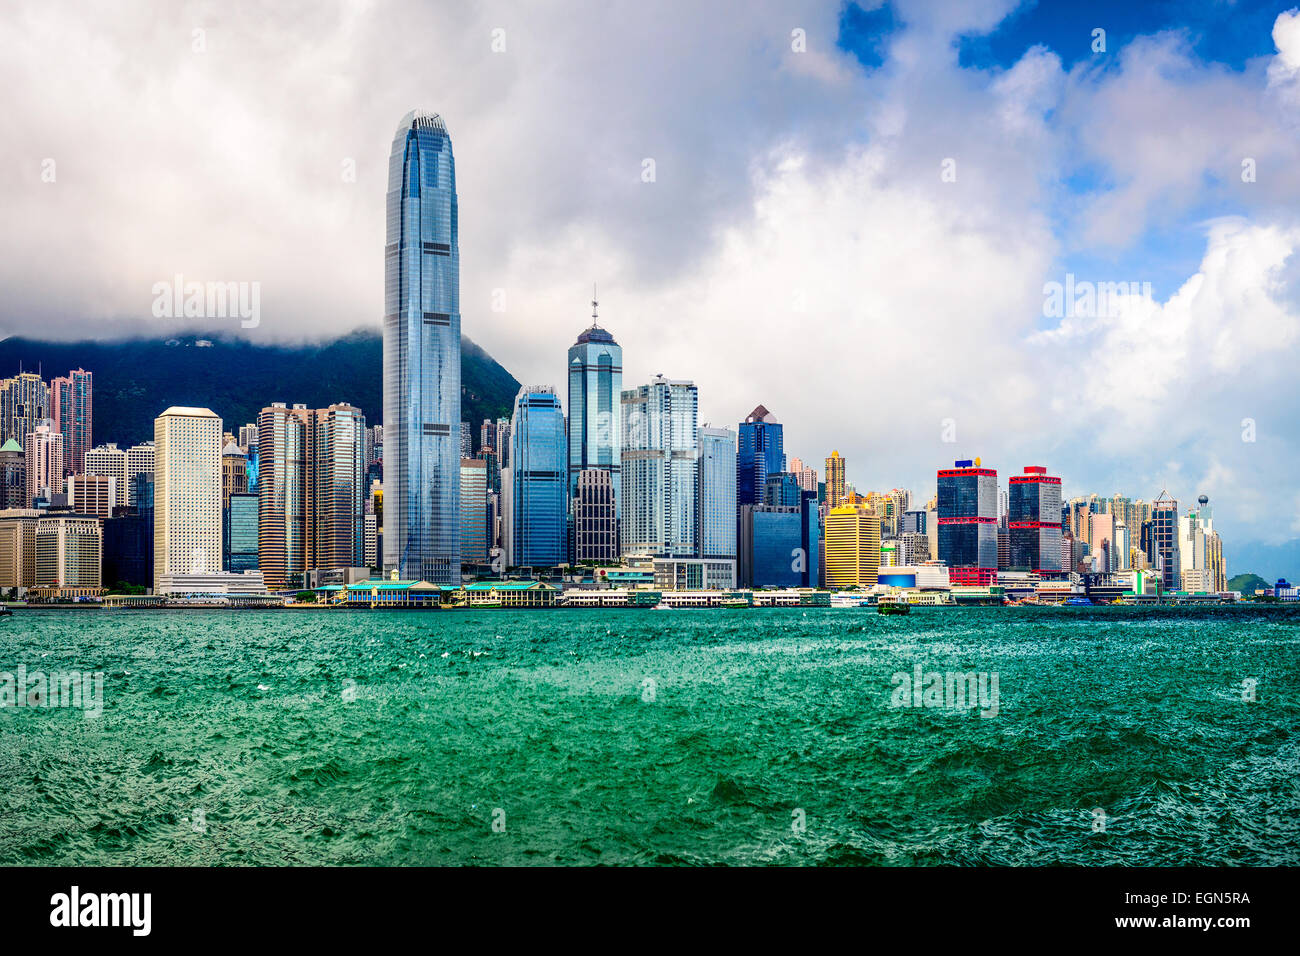 Hong Kong China city skyline. - Stock Image